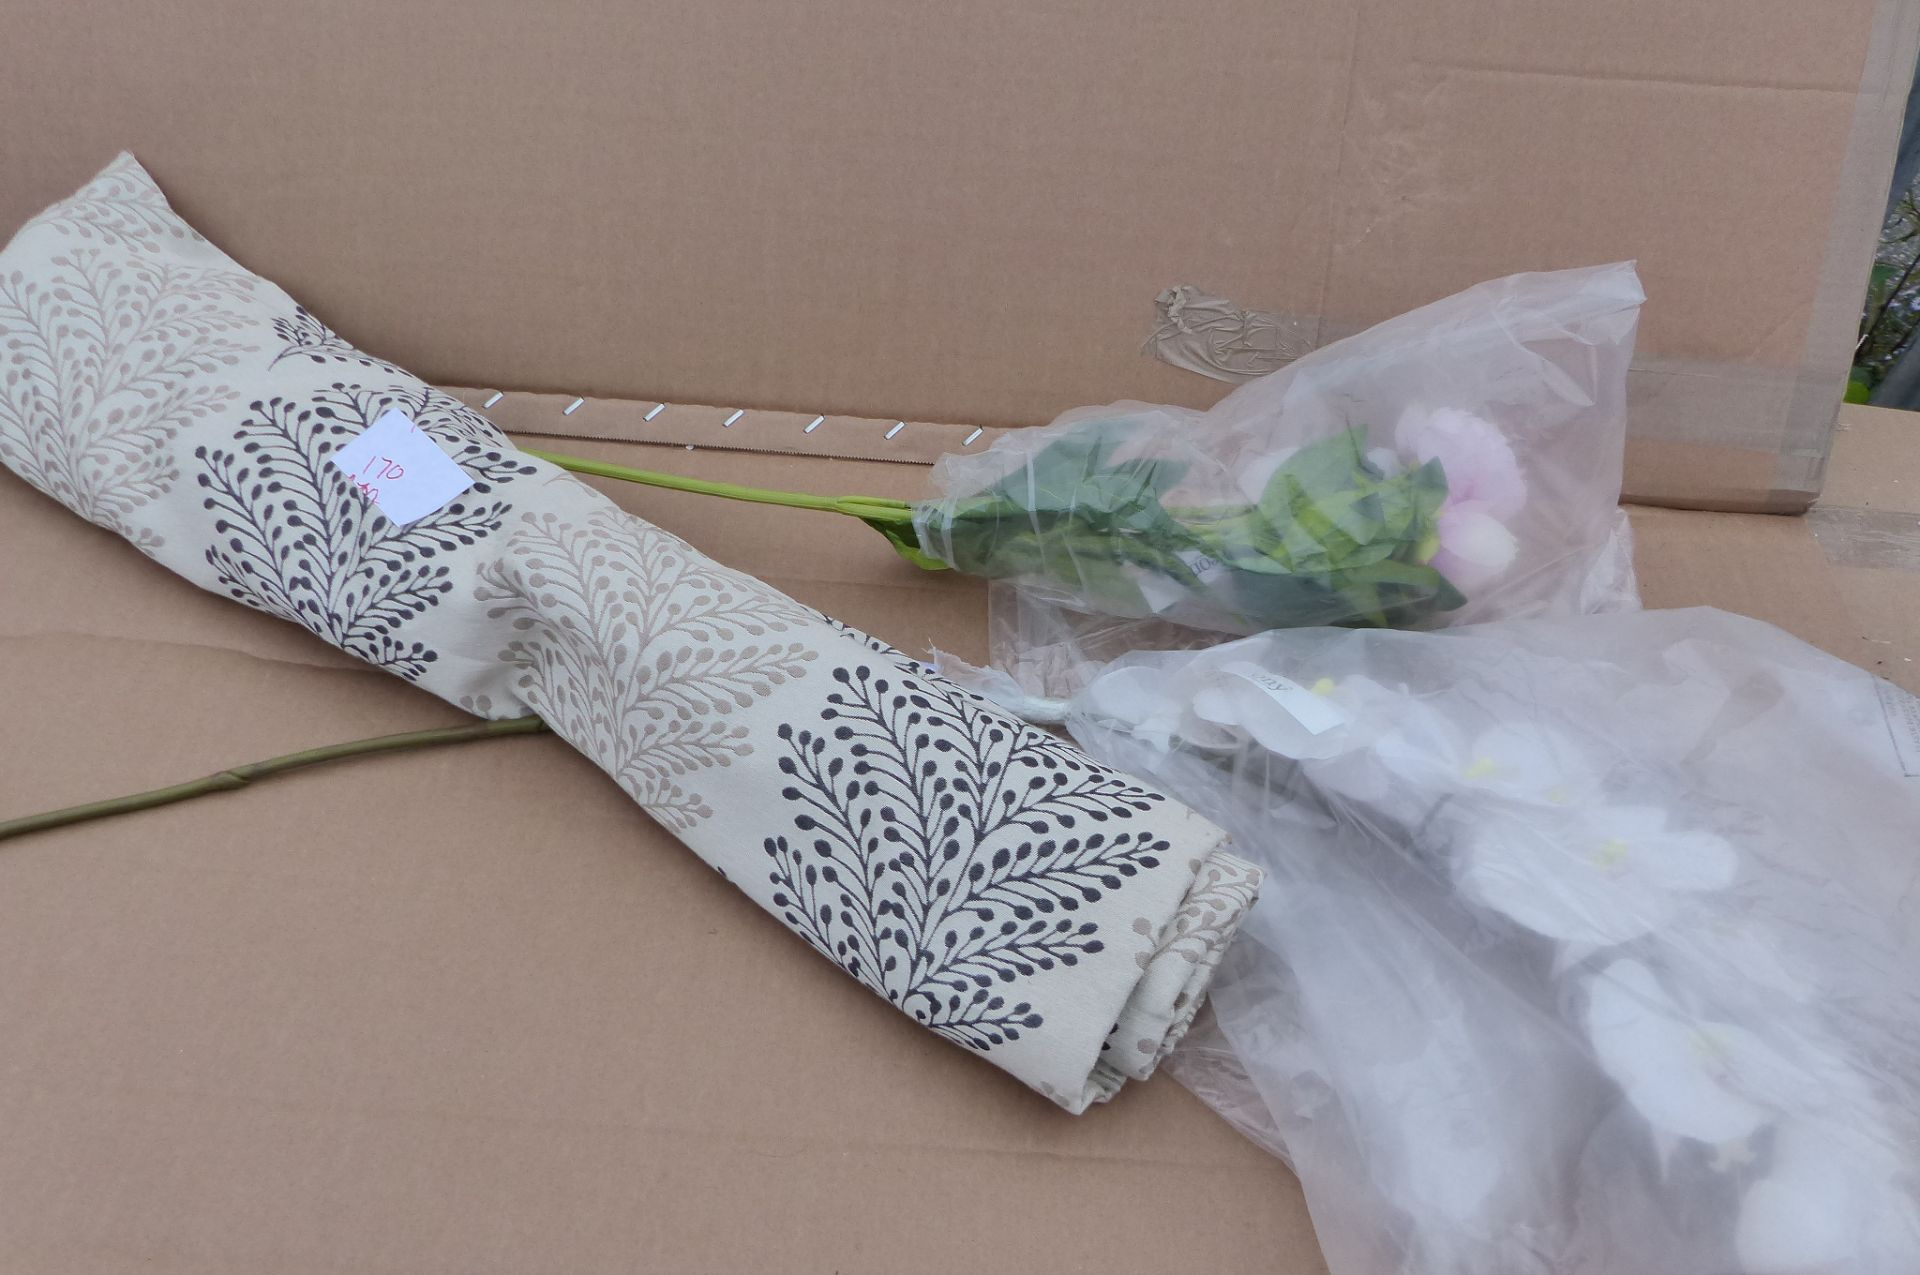 Roman blind fabric and artificial flowers